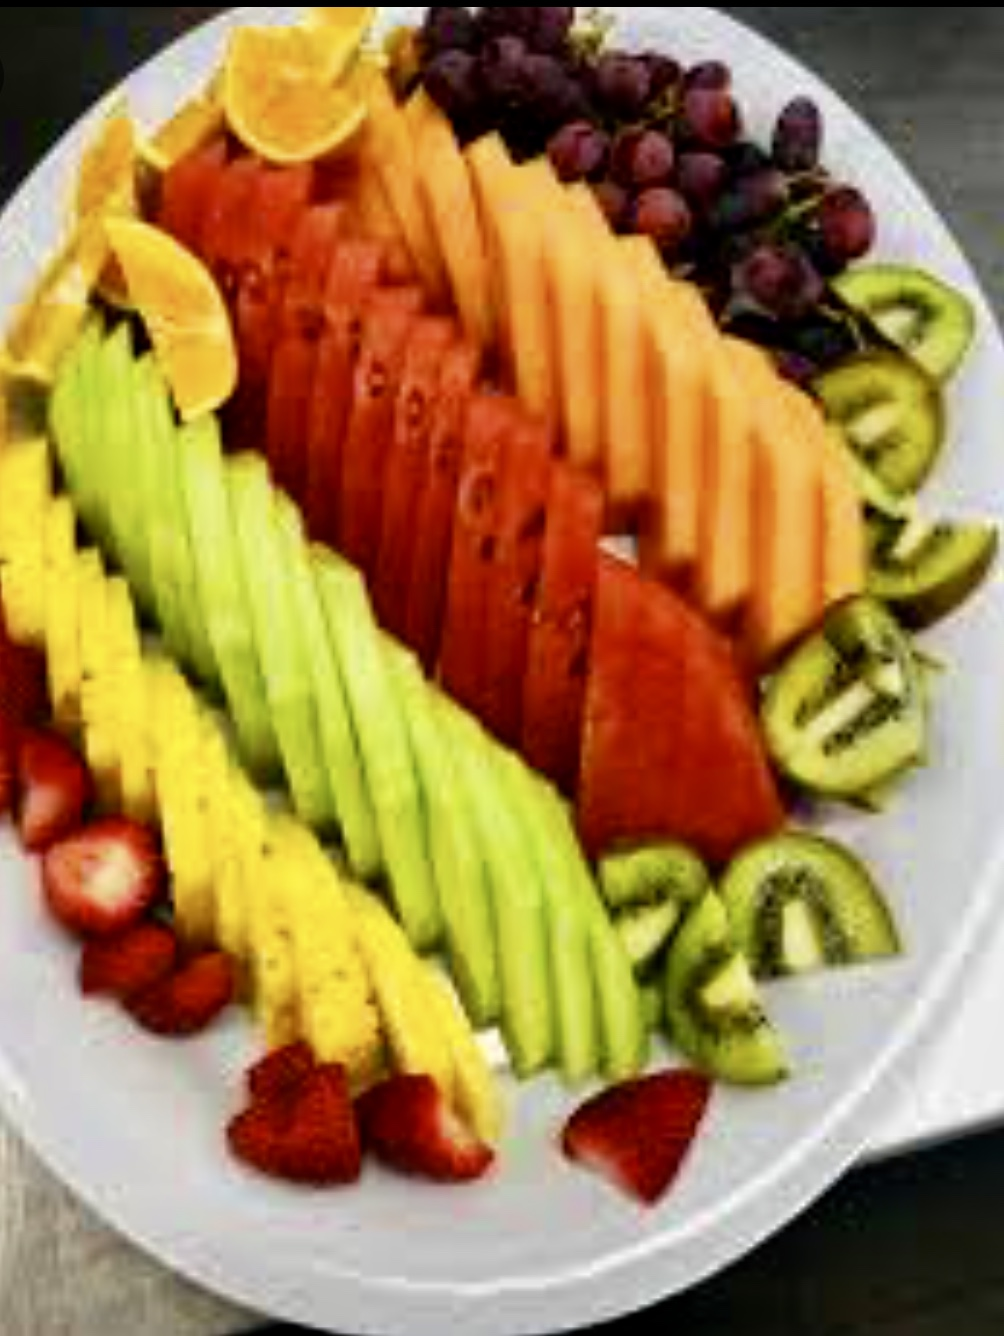 Join us at Magic Las Vegas | Fruit plate